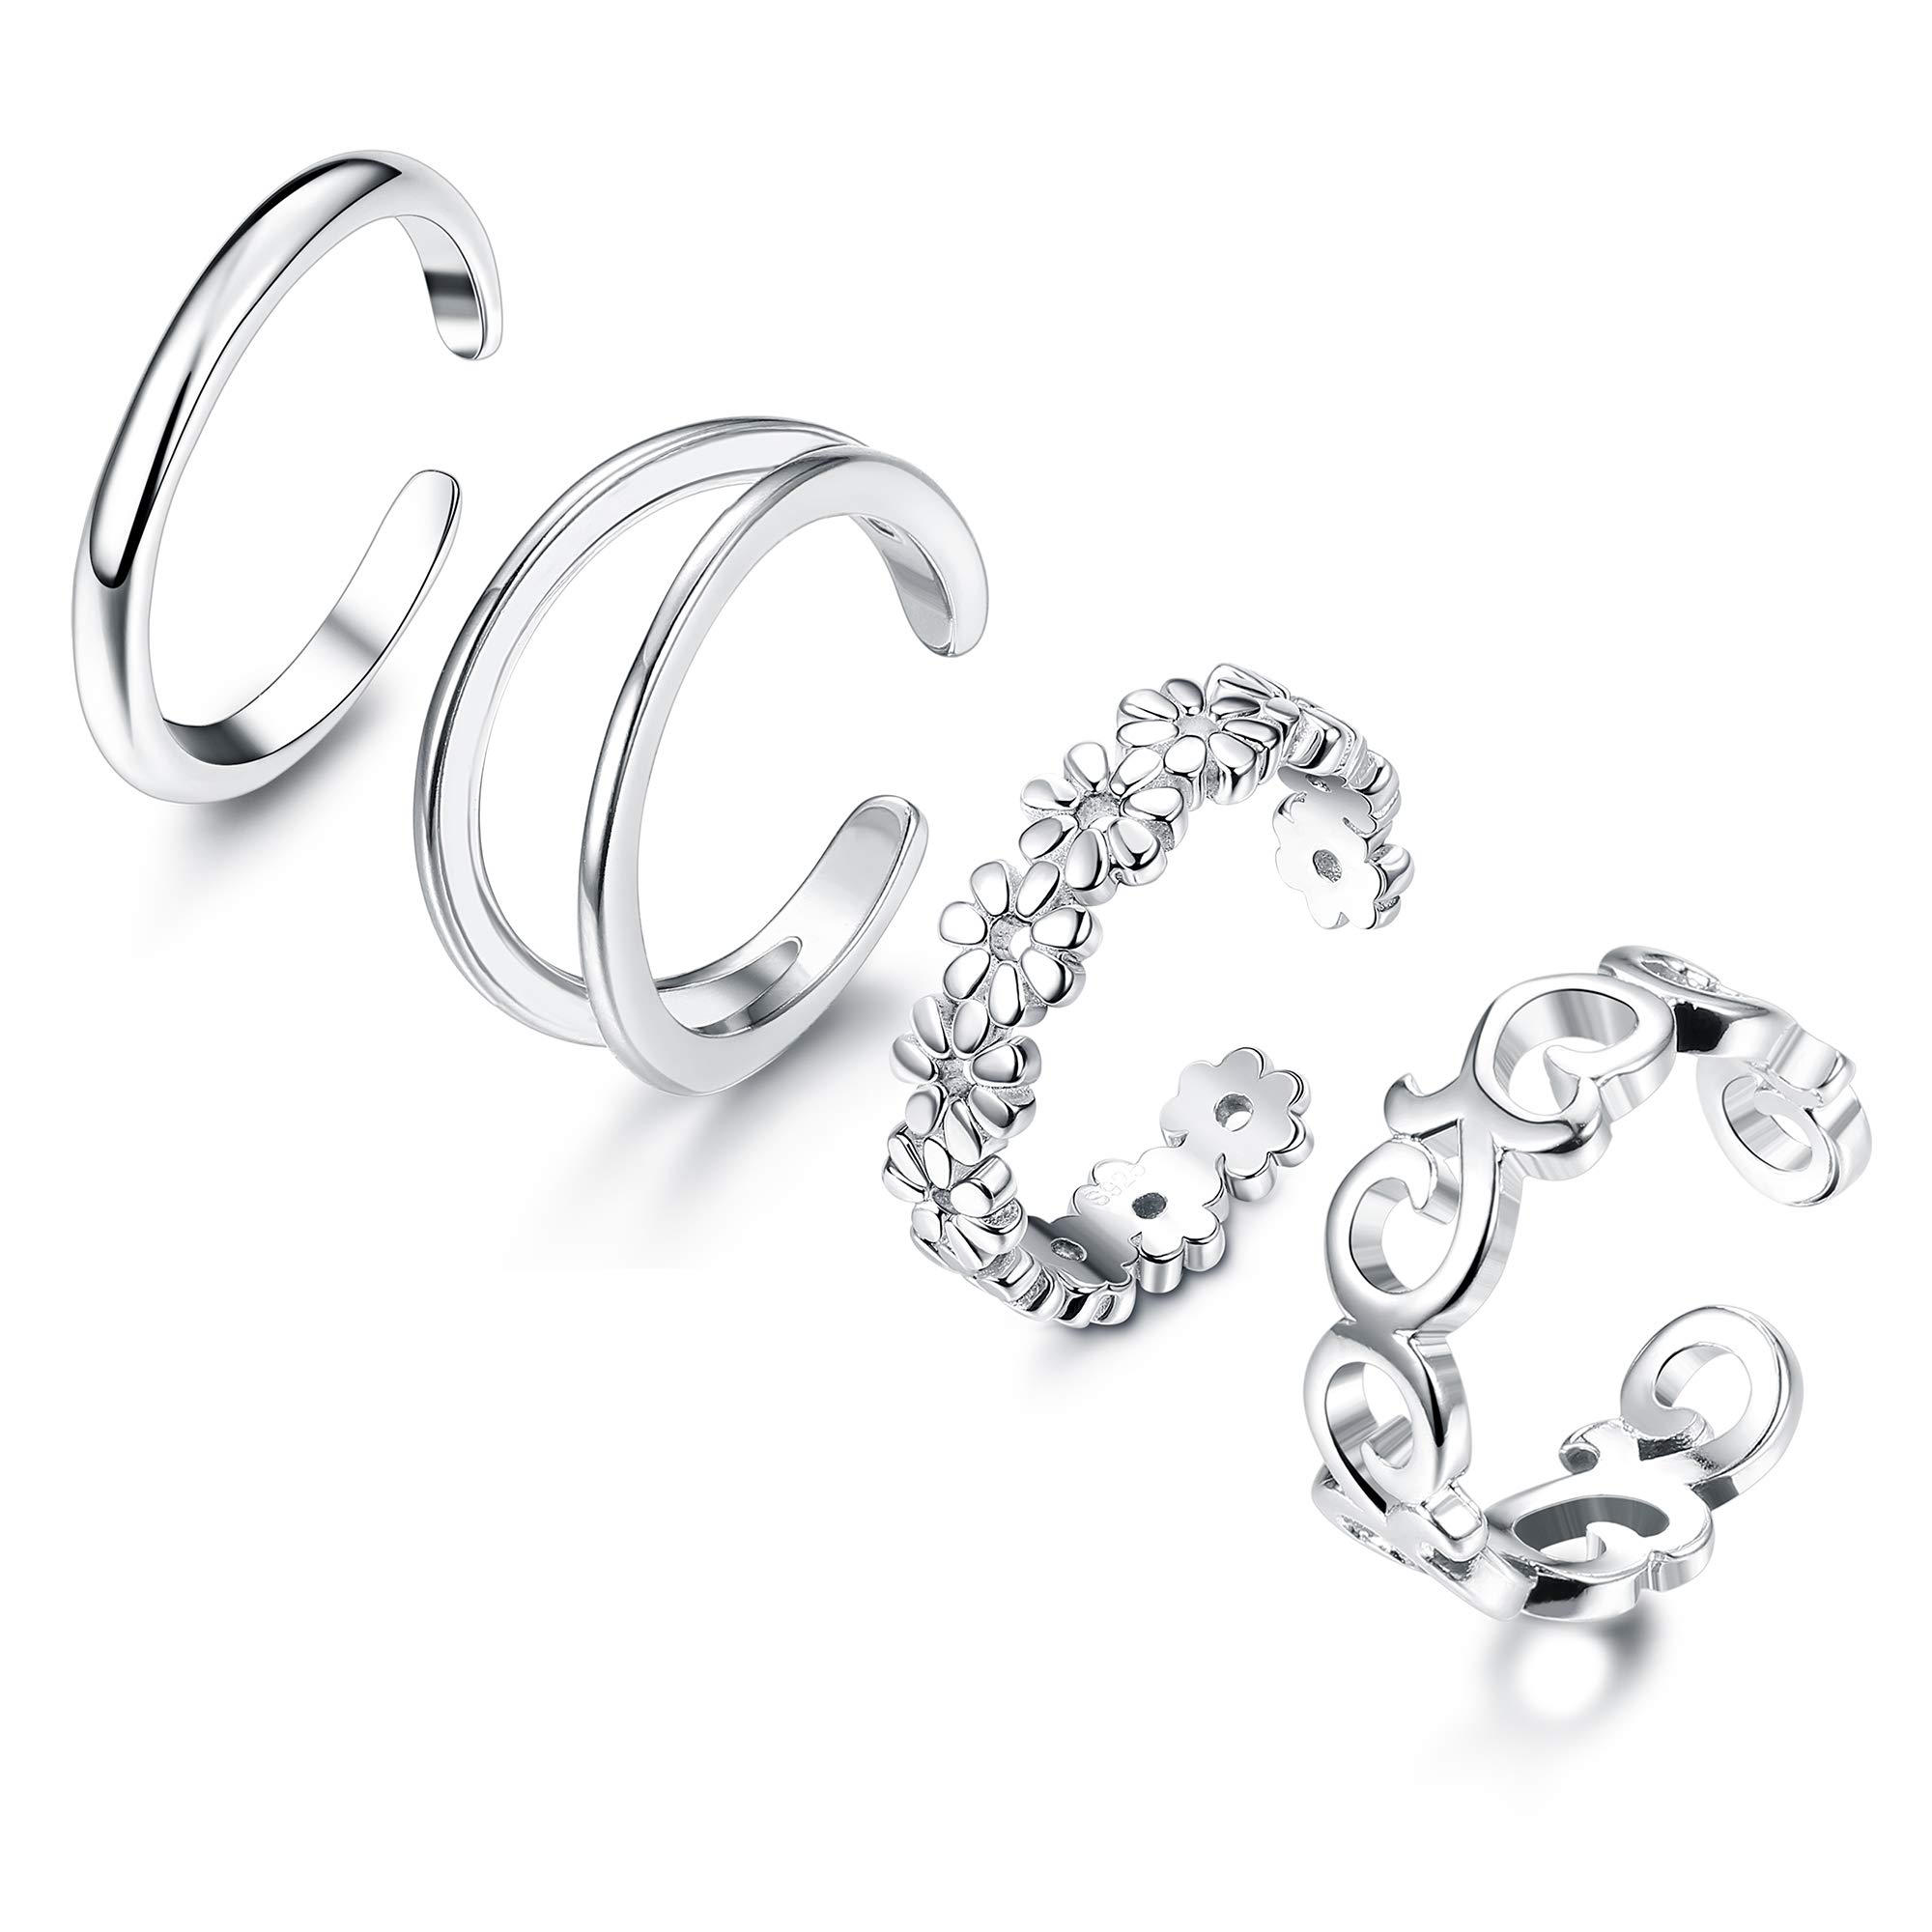 Adramata 4 Pcs 925 Sterling Silver Open Toe Rings for Women Girls Adjustable Flower Celtic Knot Simple Toe Ring Gifts Jewelry Set by Adramata